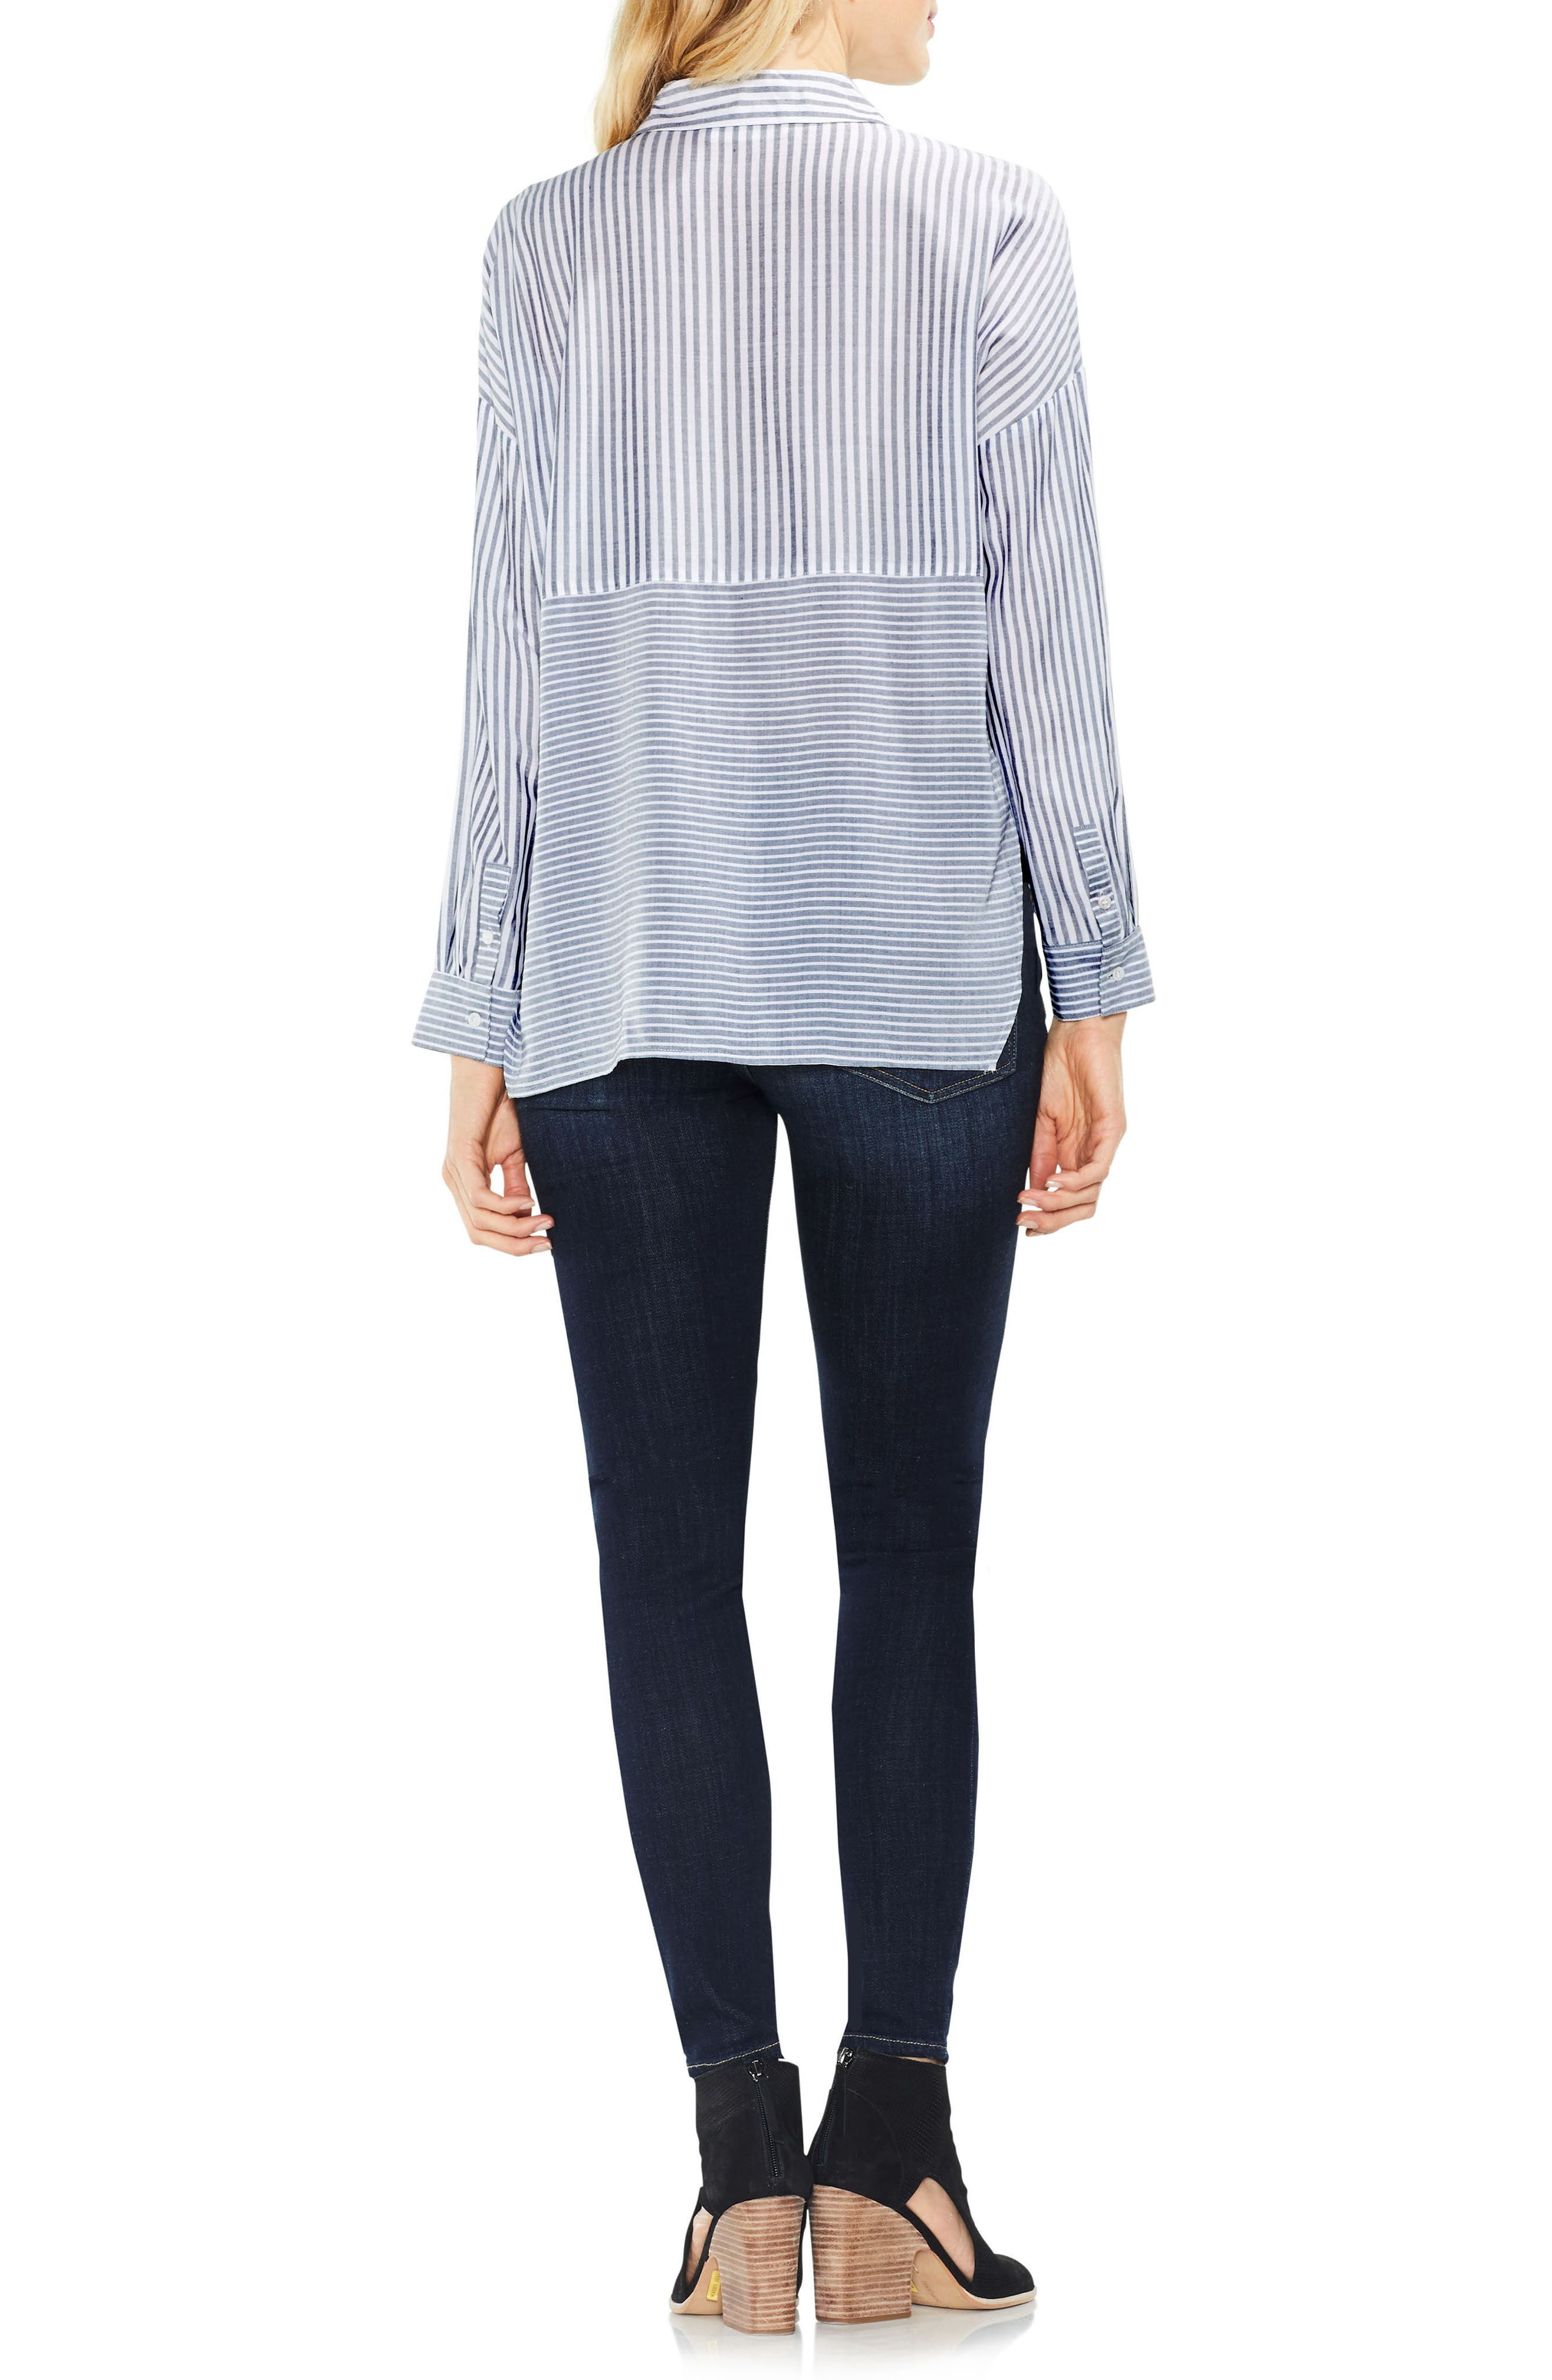 Two by Vince Camuto Mix Stripe Button Down Shirt,                             Alternate thumbnail 3, color,                             430